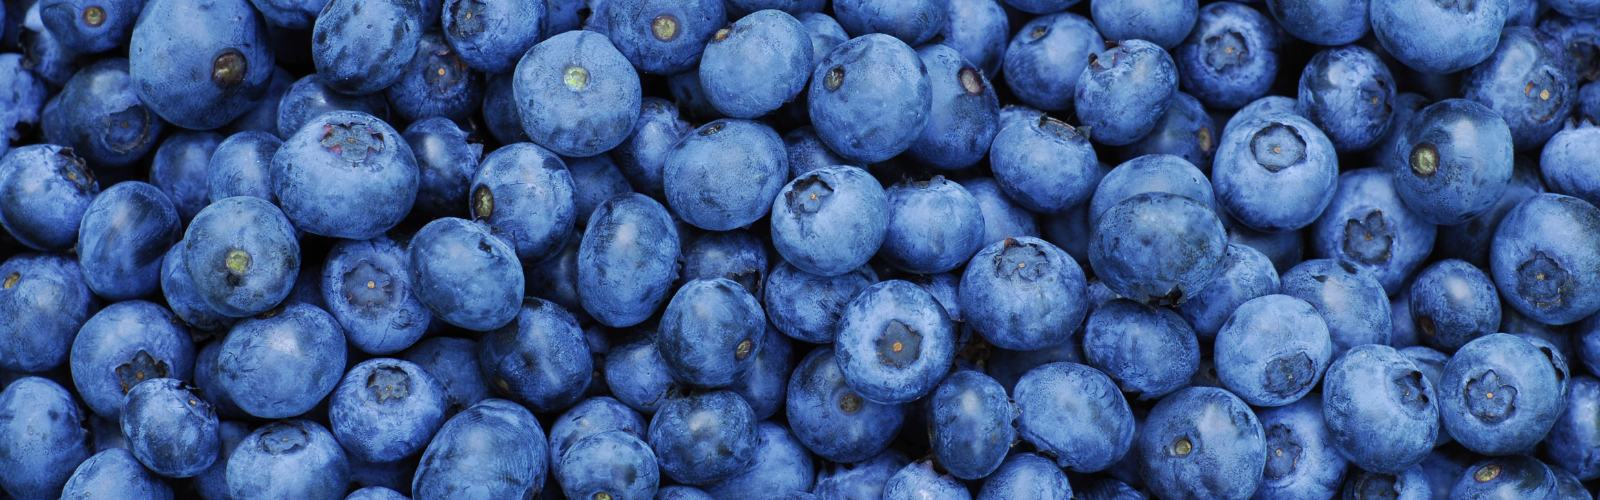 Blueberries - Fruits to Increase Sperm Count and Motility